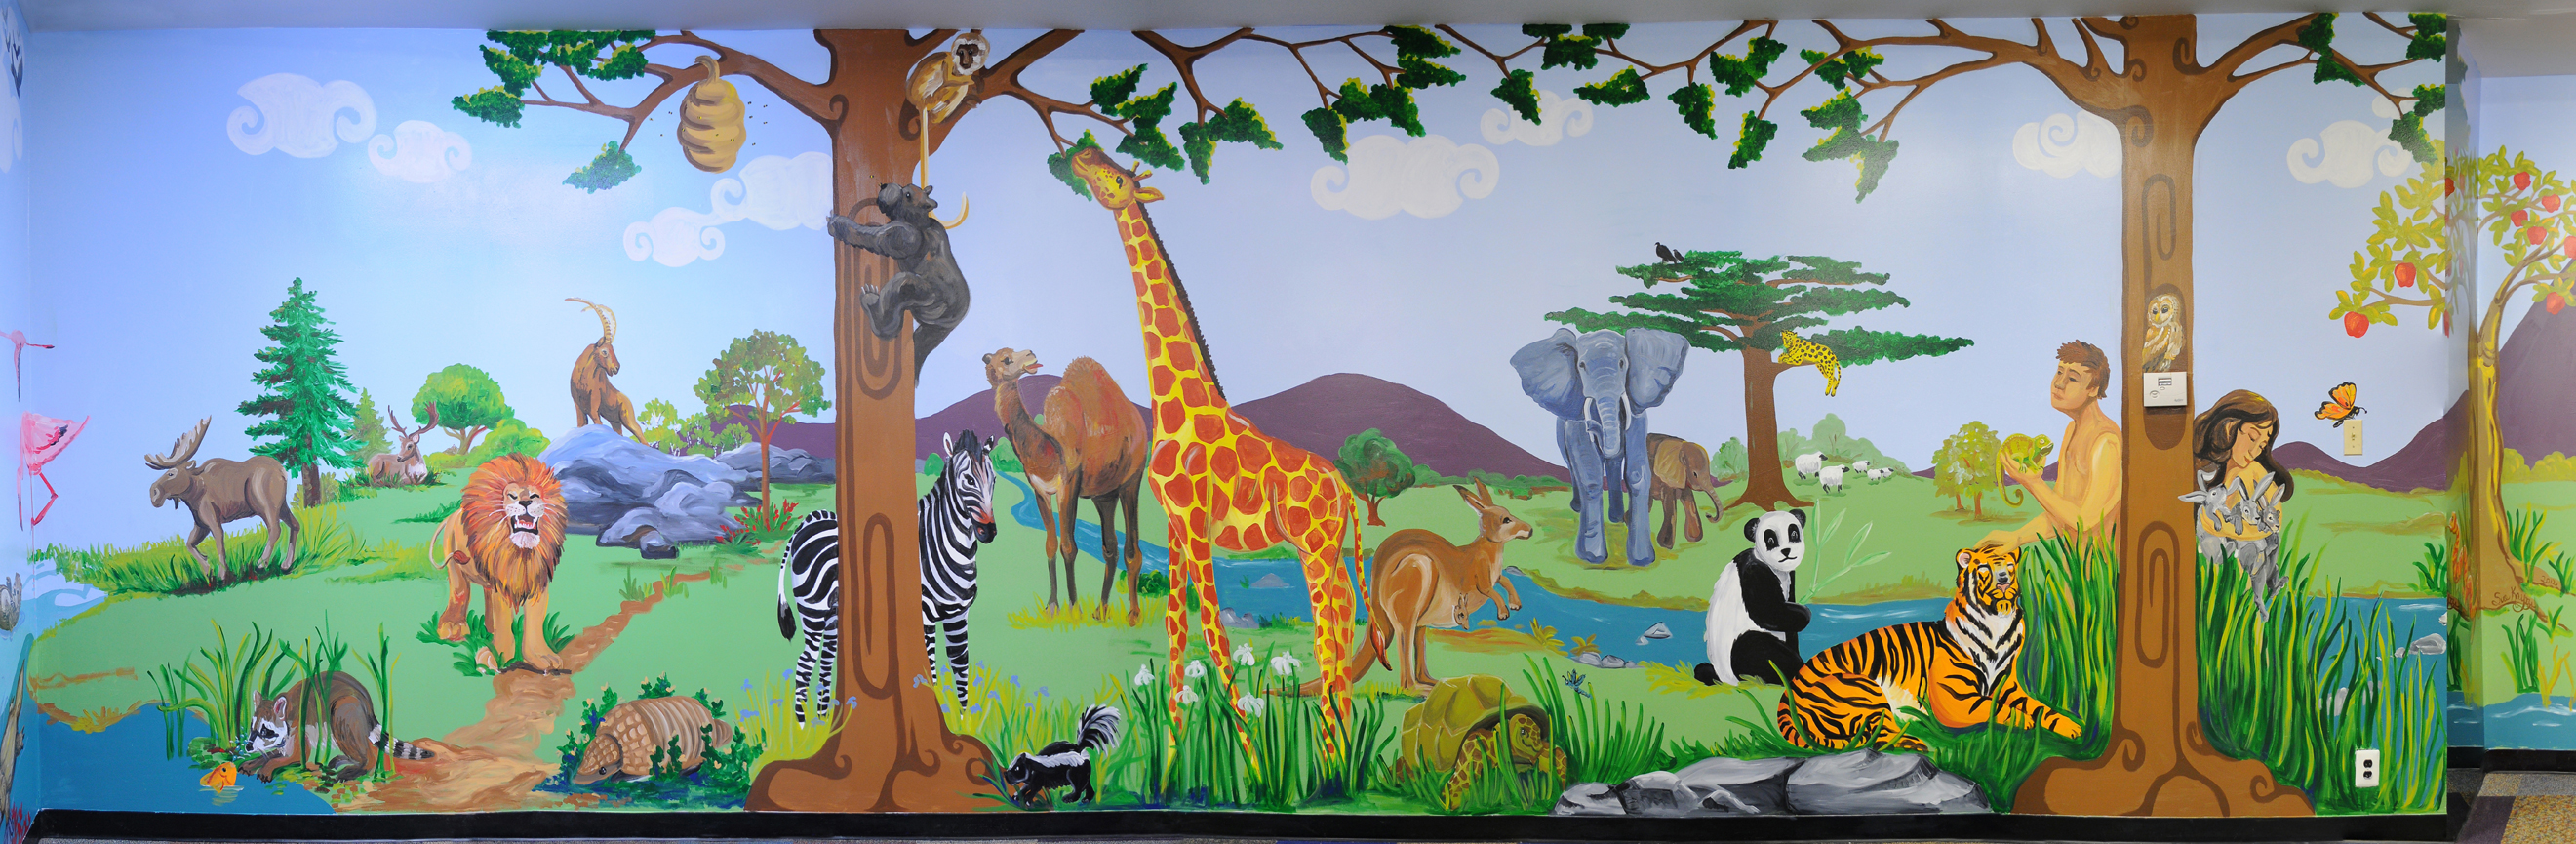 Murals sue kay art for Creation mural kids